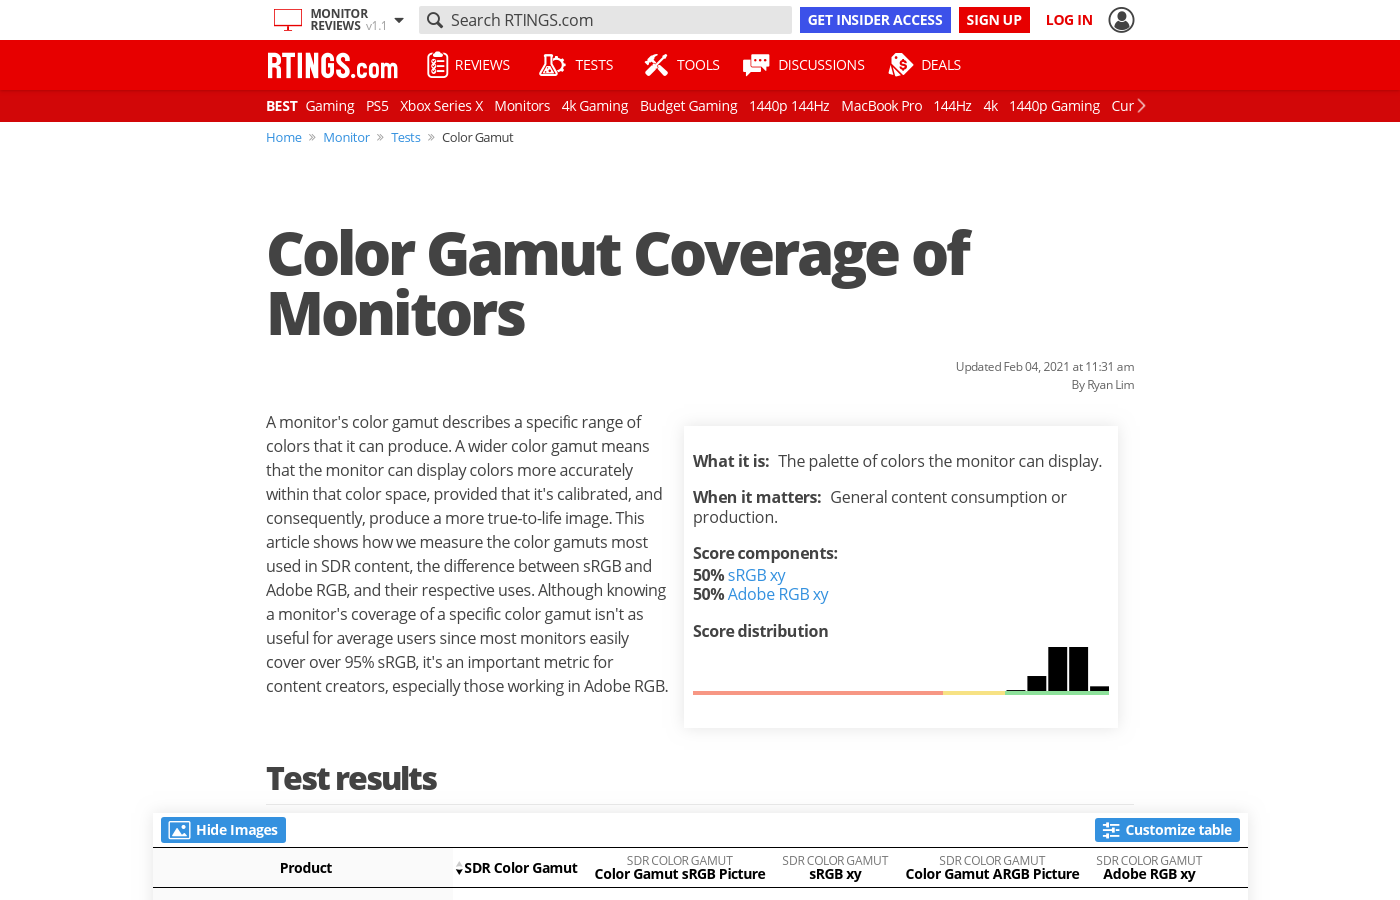 Our Monitor Picture Quality Tests: Color Gamut